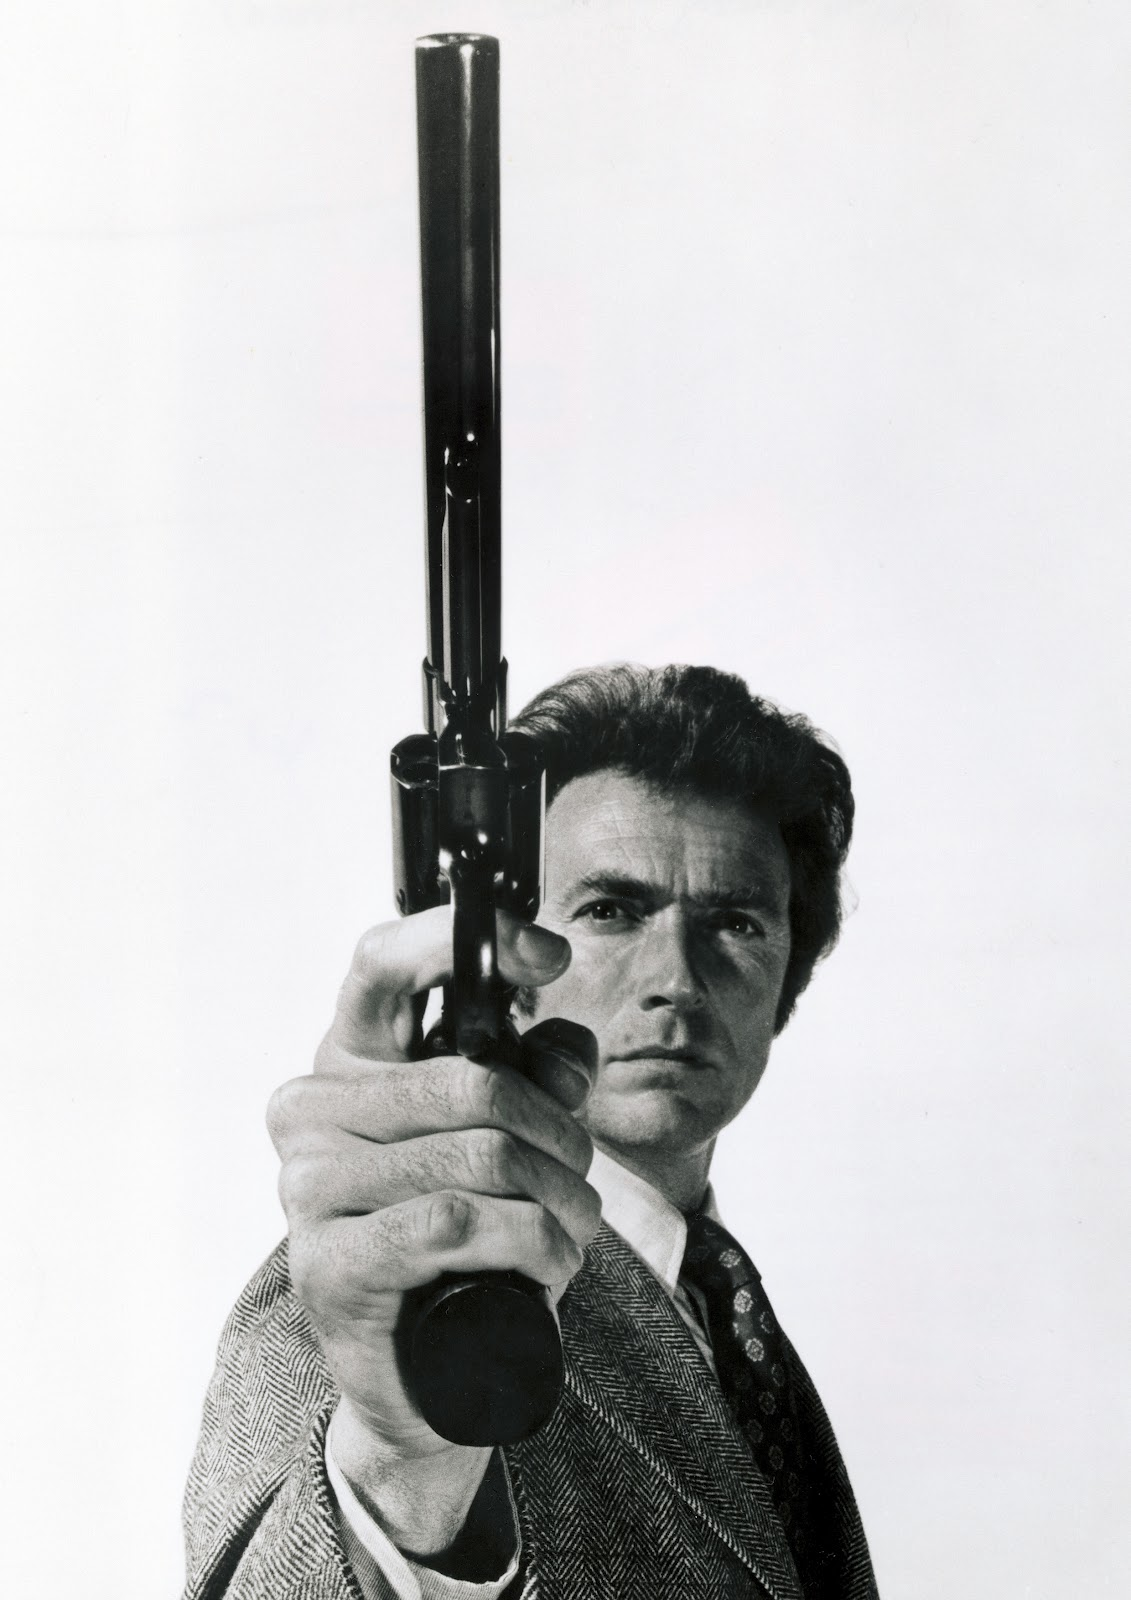 http://2.bp.blogspot.com/-rJ_GnNXjUbE/UAIuDQpH5qI/AAAAAAAAxS0/MHpdJQXYEU0/s1600/clint_eastwood_dirty_harry_desktop_2818x3661_hd-wallpaper-495345.jpg